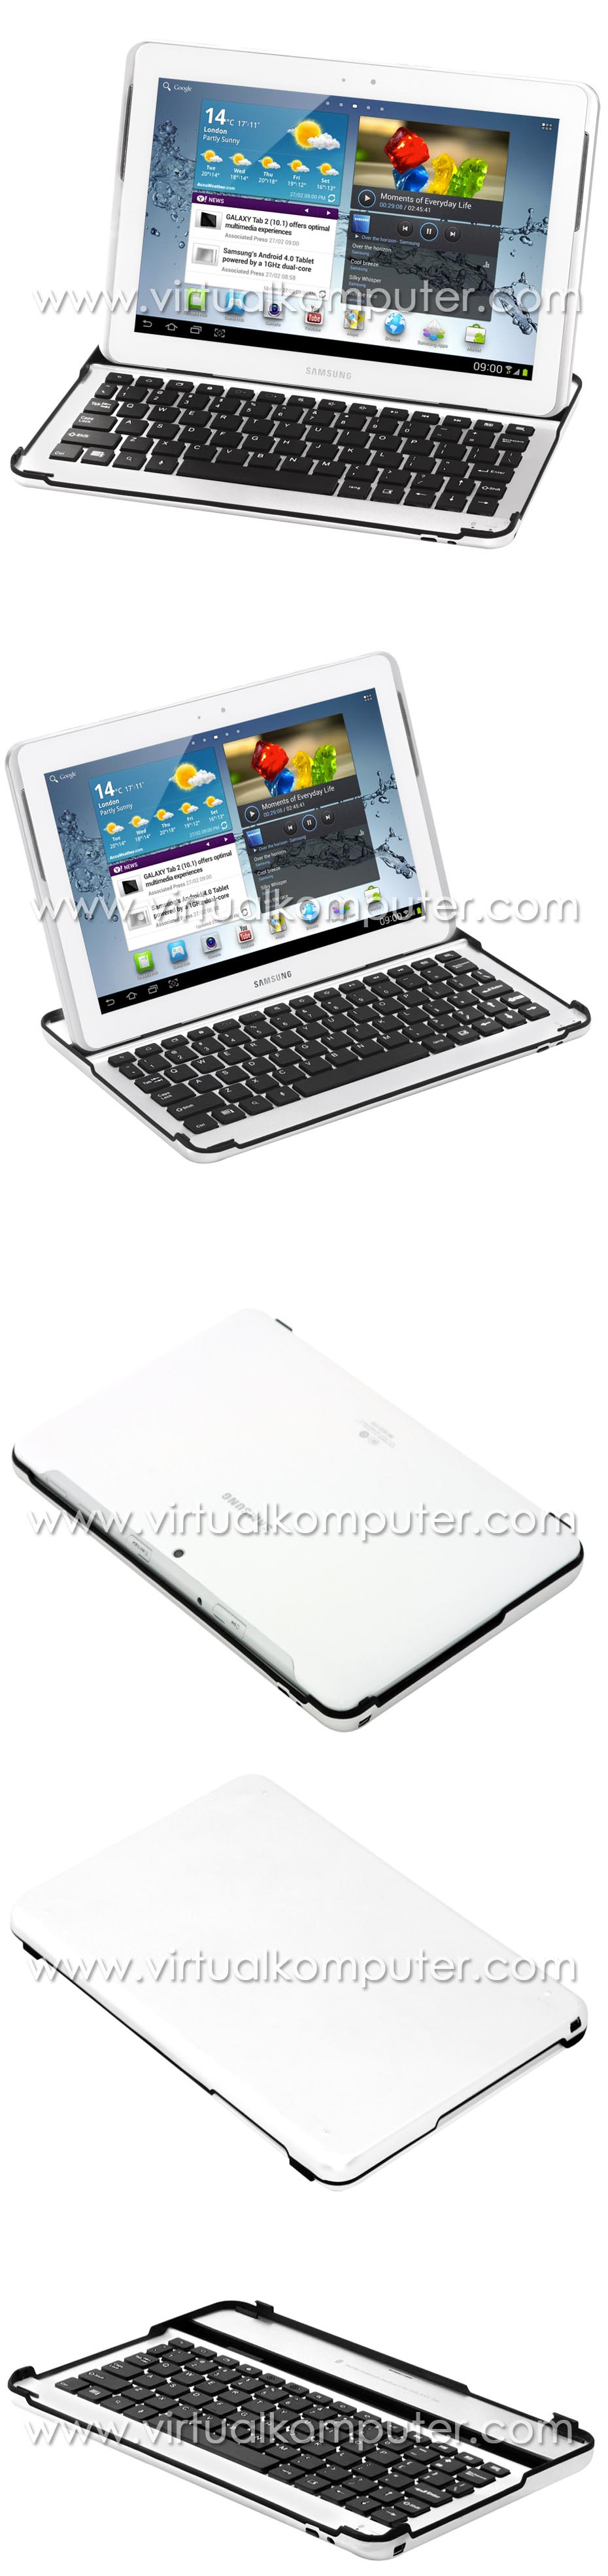 Ultra Slim Keyboard for Samsung Galaxy Tab 10.1 P5100 P7500 Overview